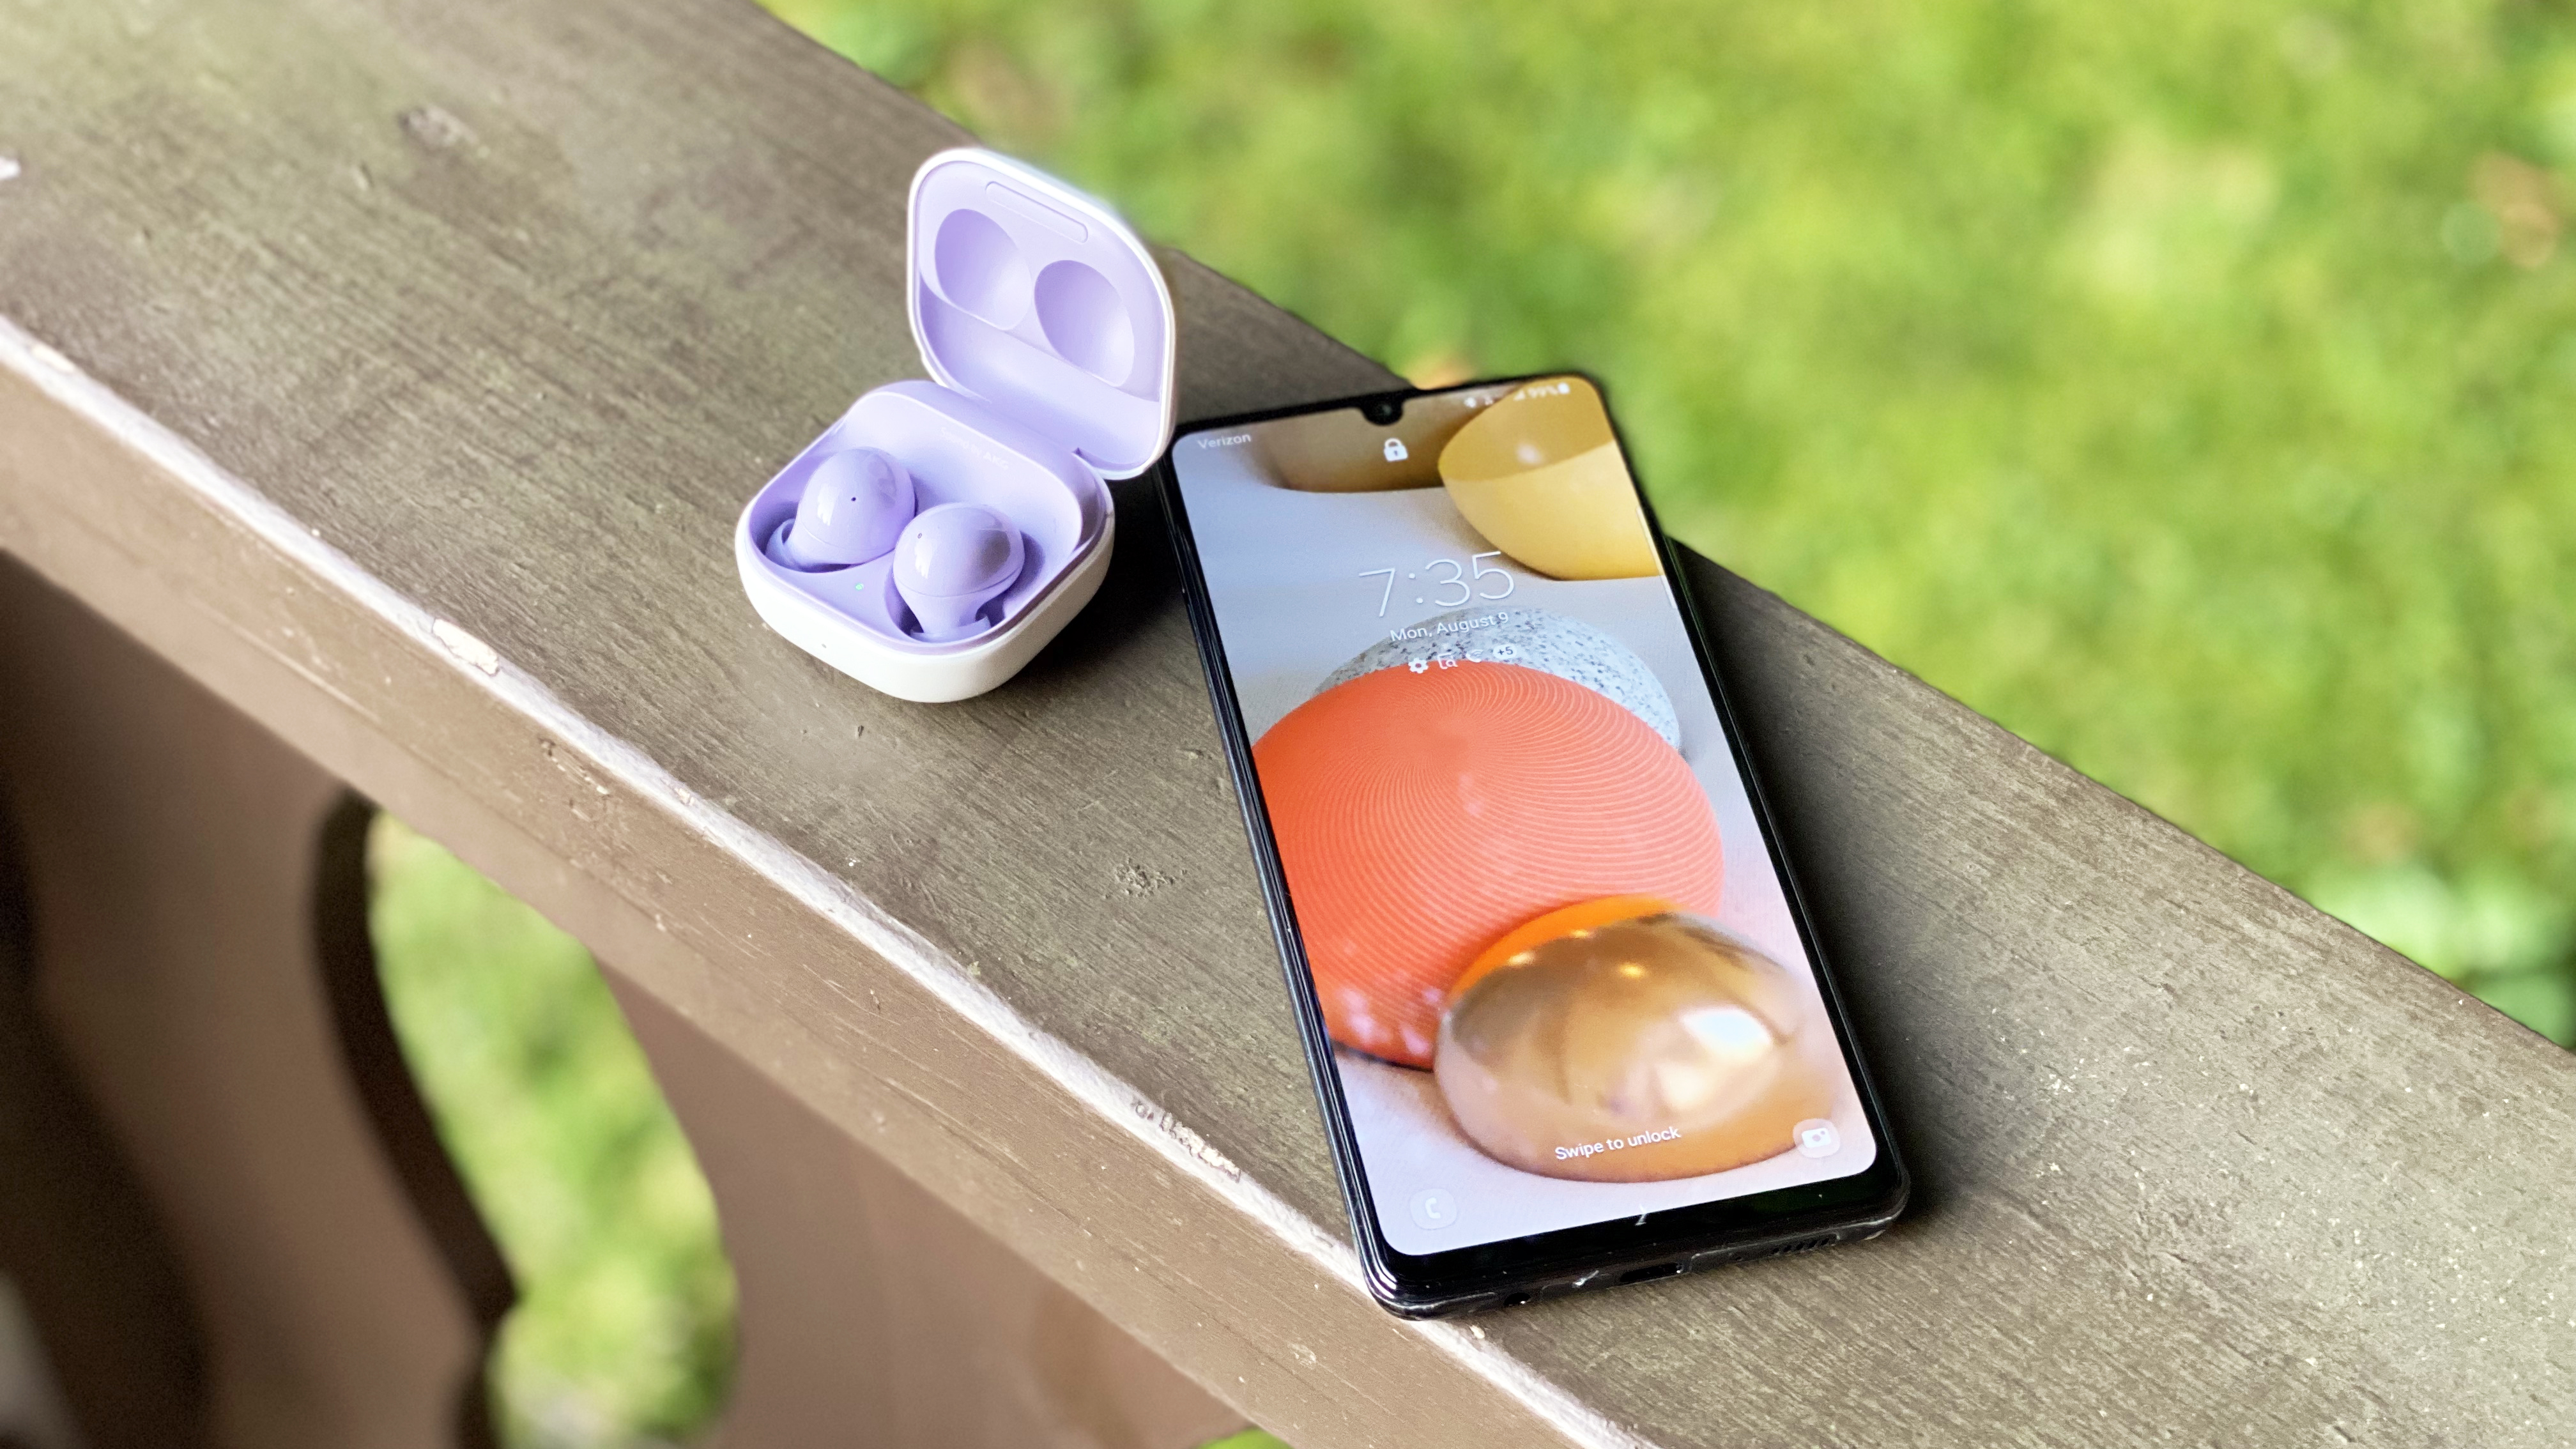 the samsung galaxy buds 2 next to a smartphone